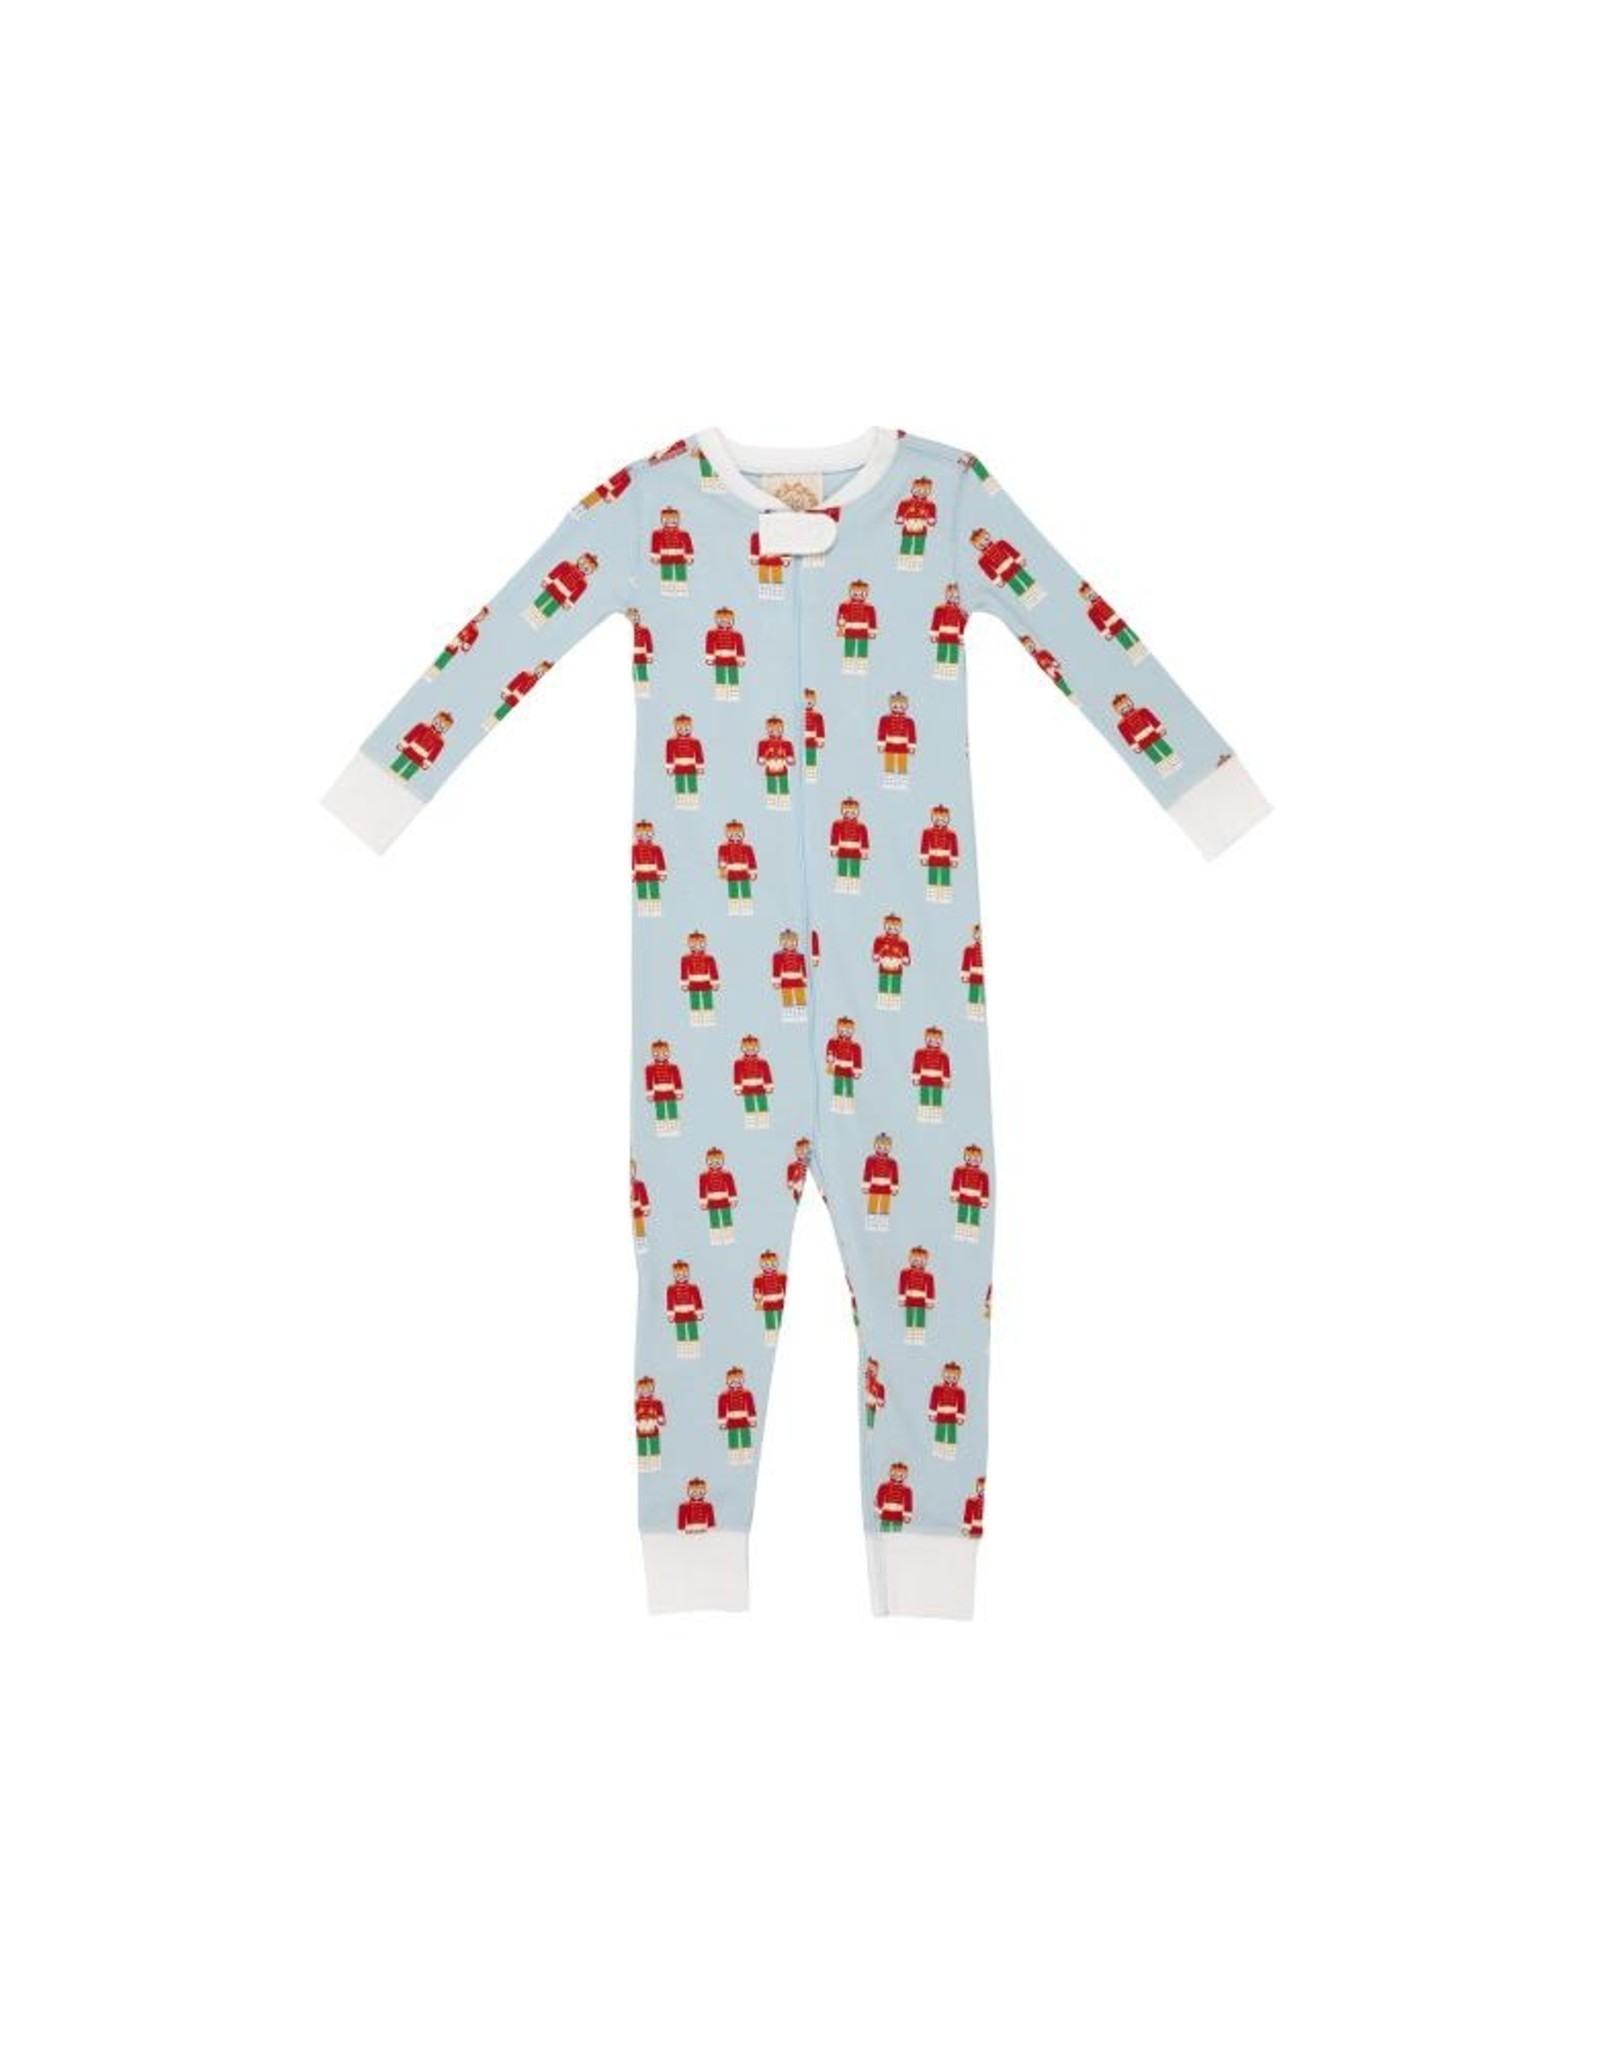 The Beaufort Bonnet Company Knoxs Night Night Footed North Pole Prince